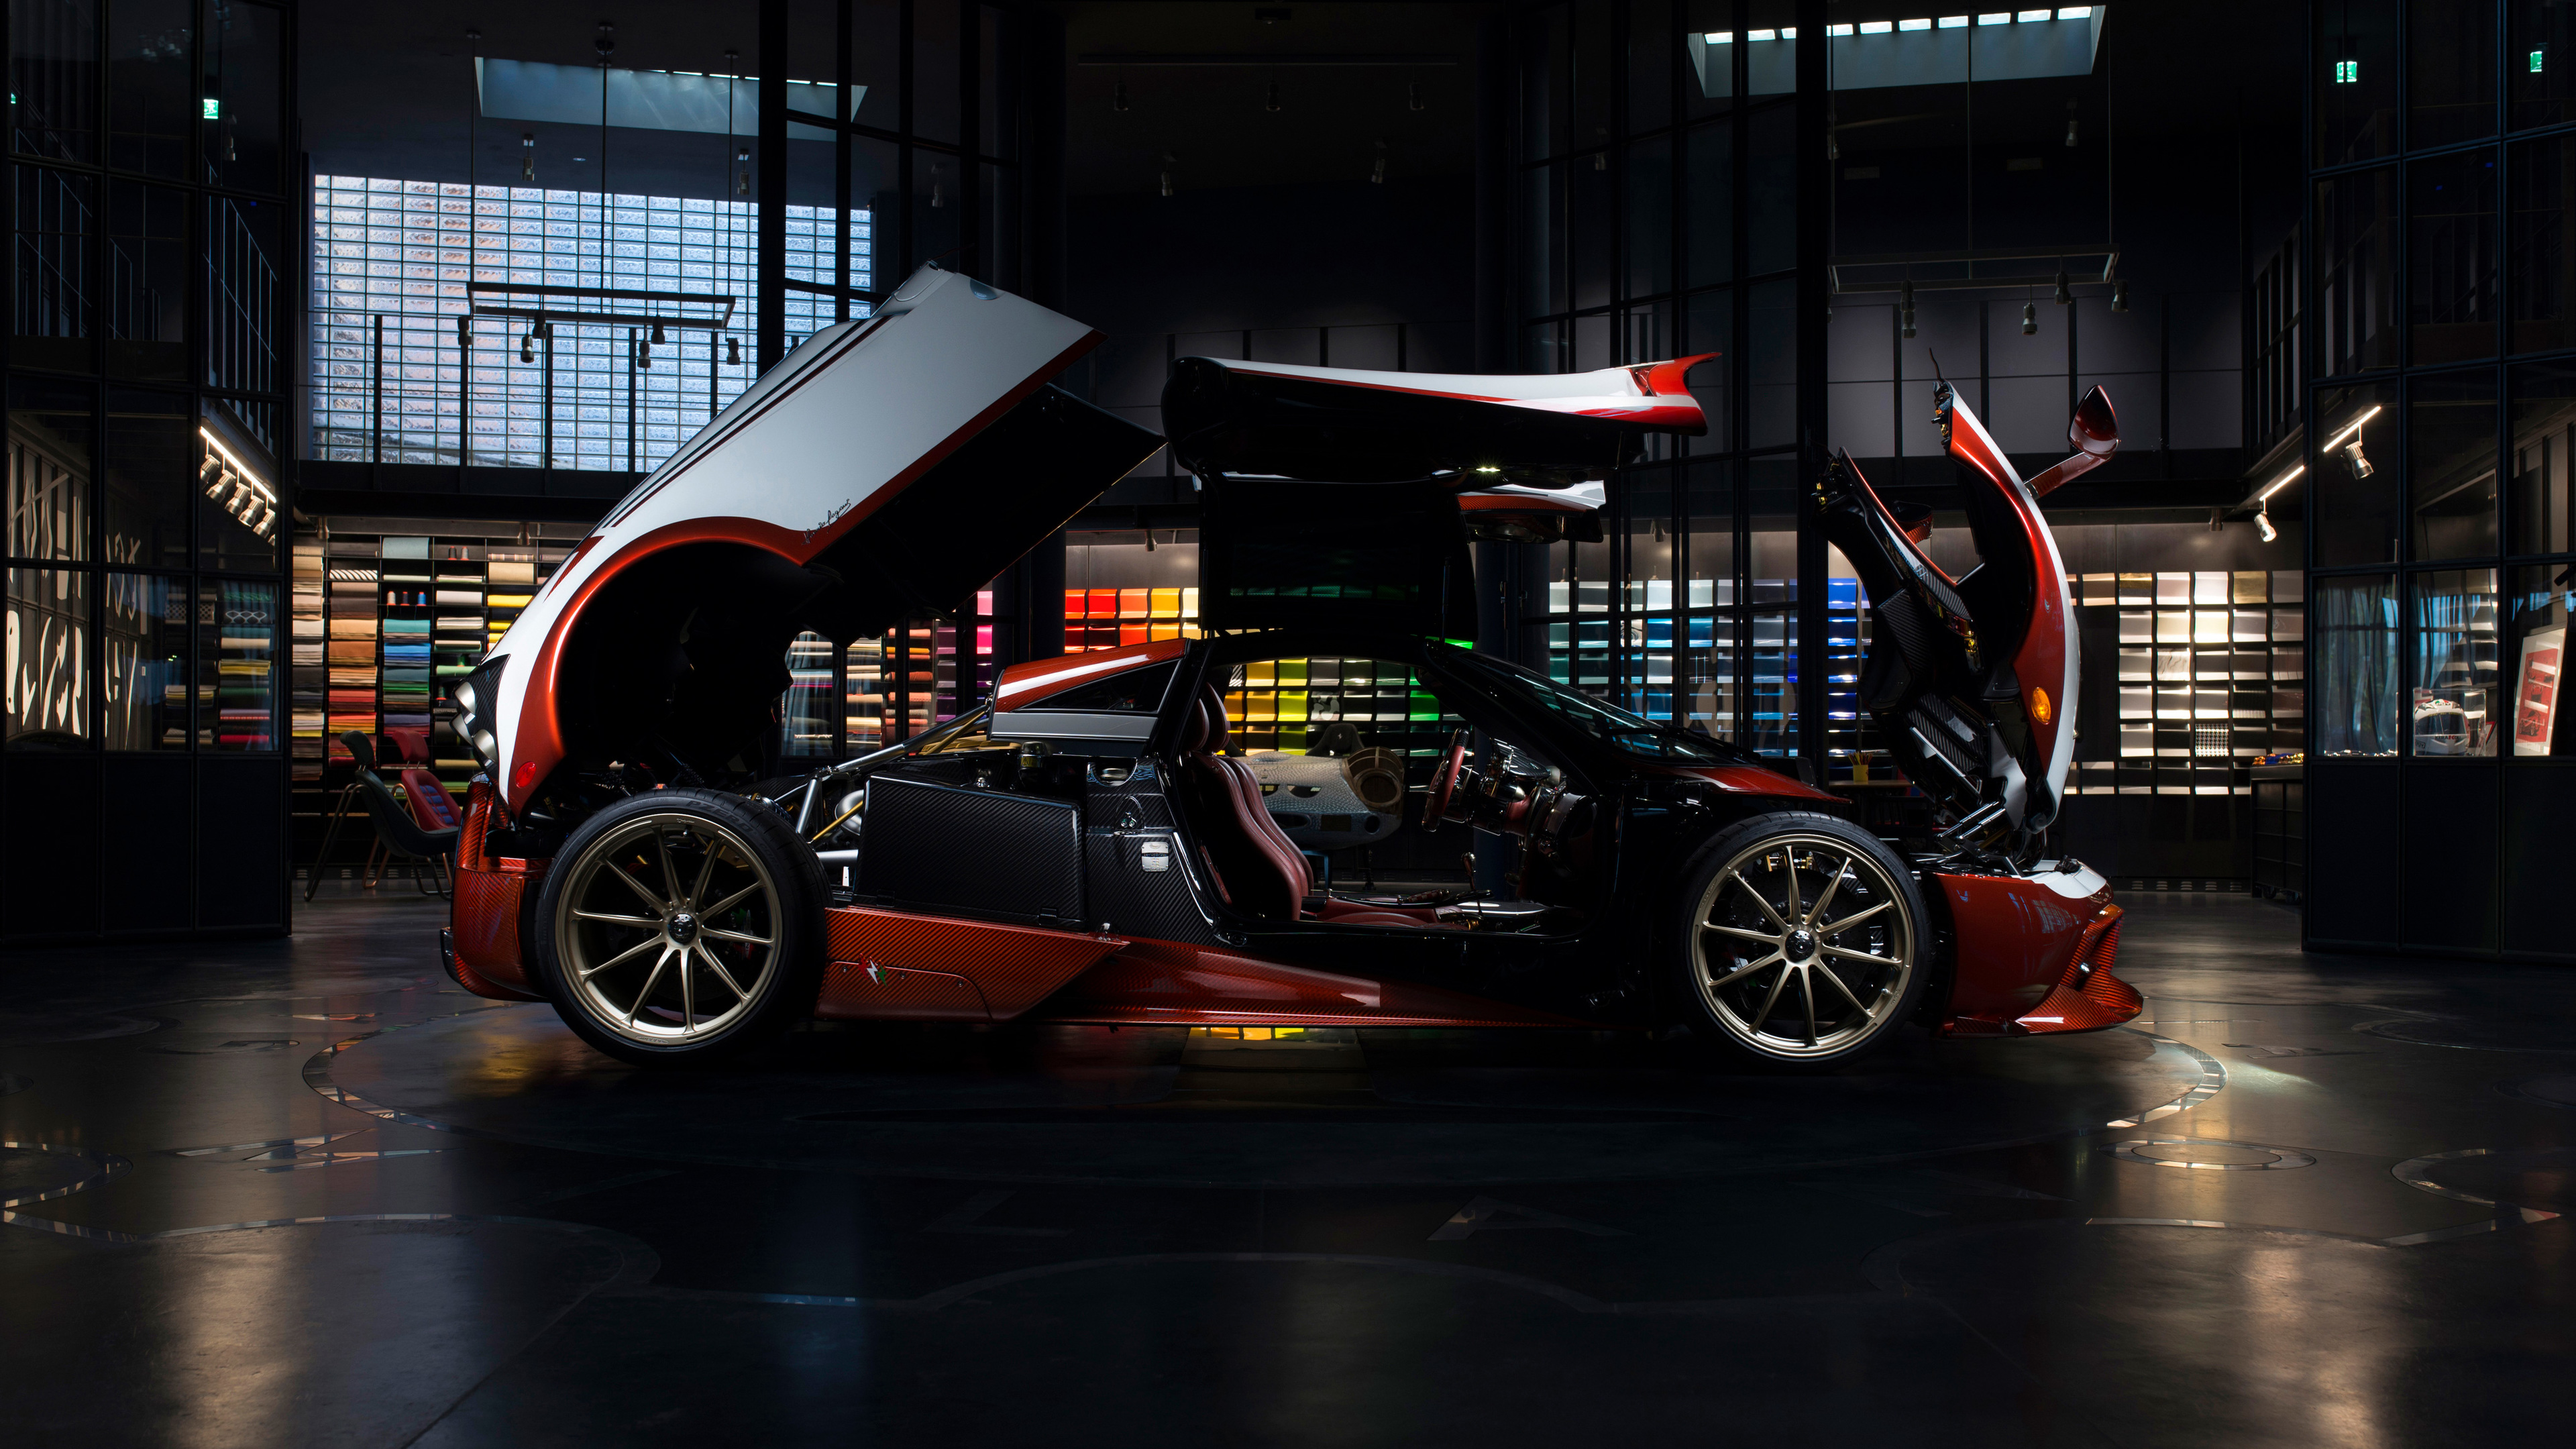 pagani huayra lampo 2018 futurist open doors back 1539108937 - Pagani Huayra Lampo 2018 Futurist Open Doors Back - pagani wallpapers, pagani huayra lampo wallpapers, hd-wallpapers, cars wallpapers, 4k-wallpapers, 2018 cars wallpapers